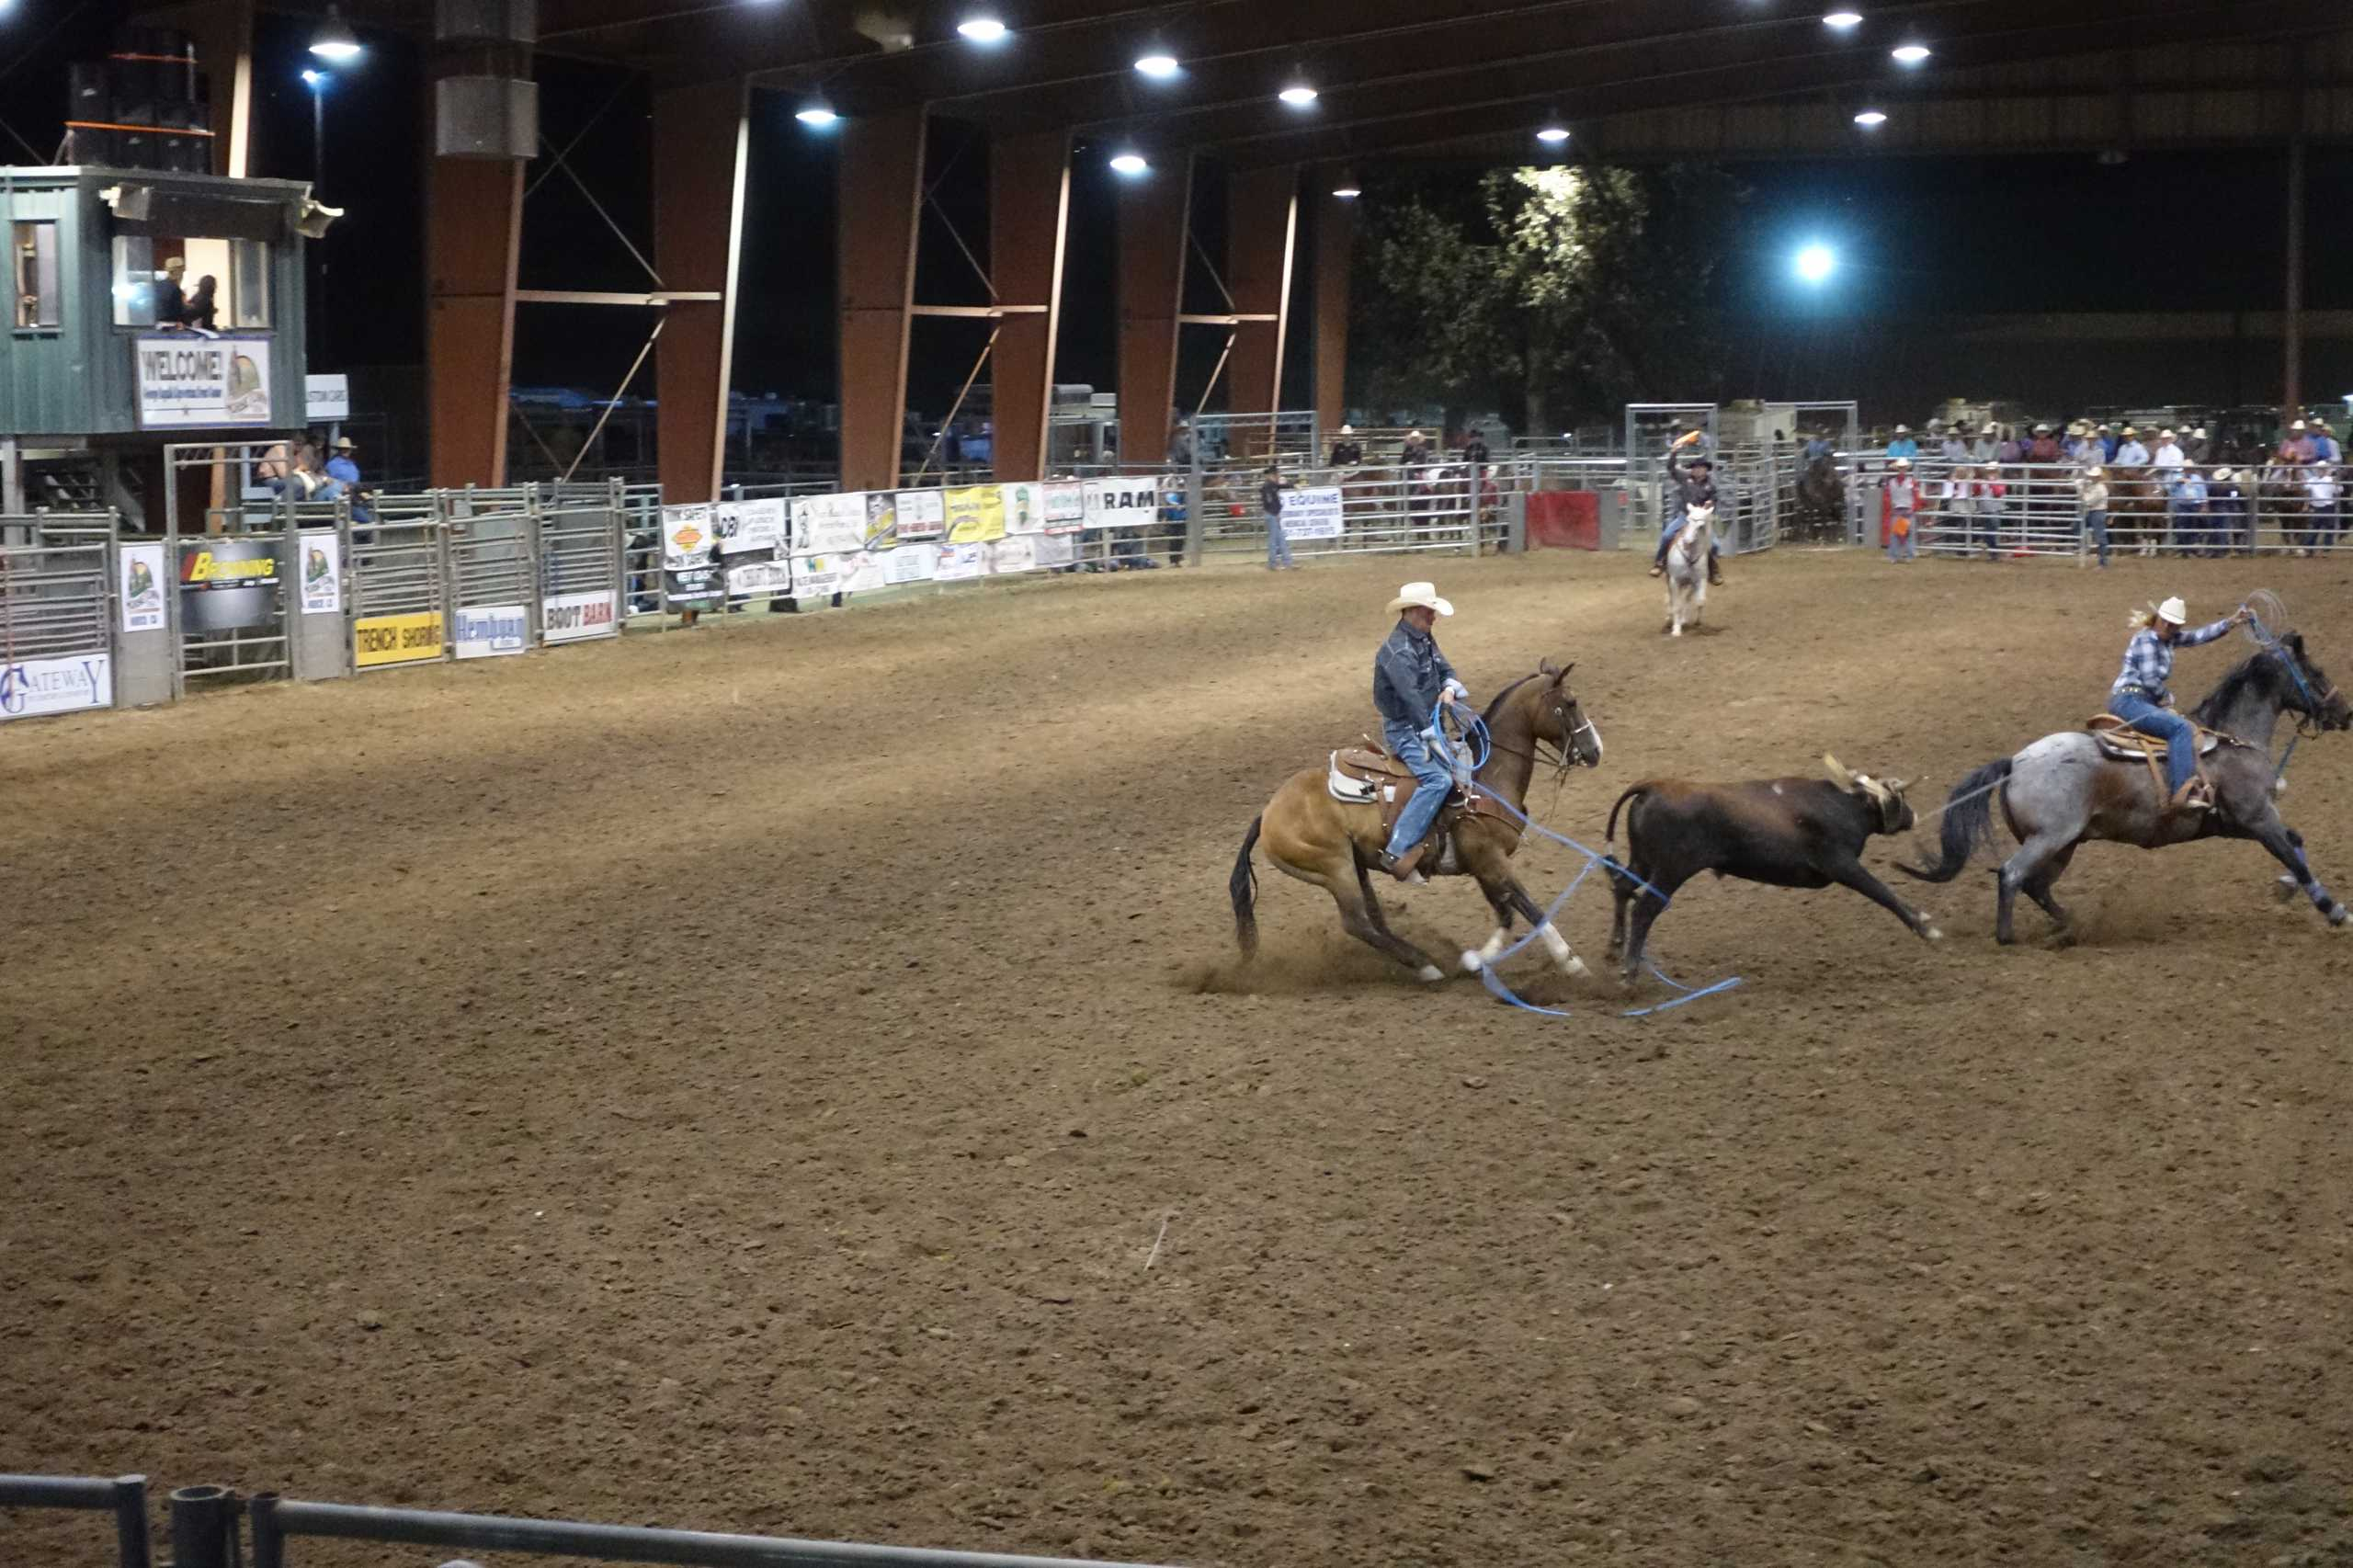 erfolgreiches Team Roping